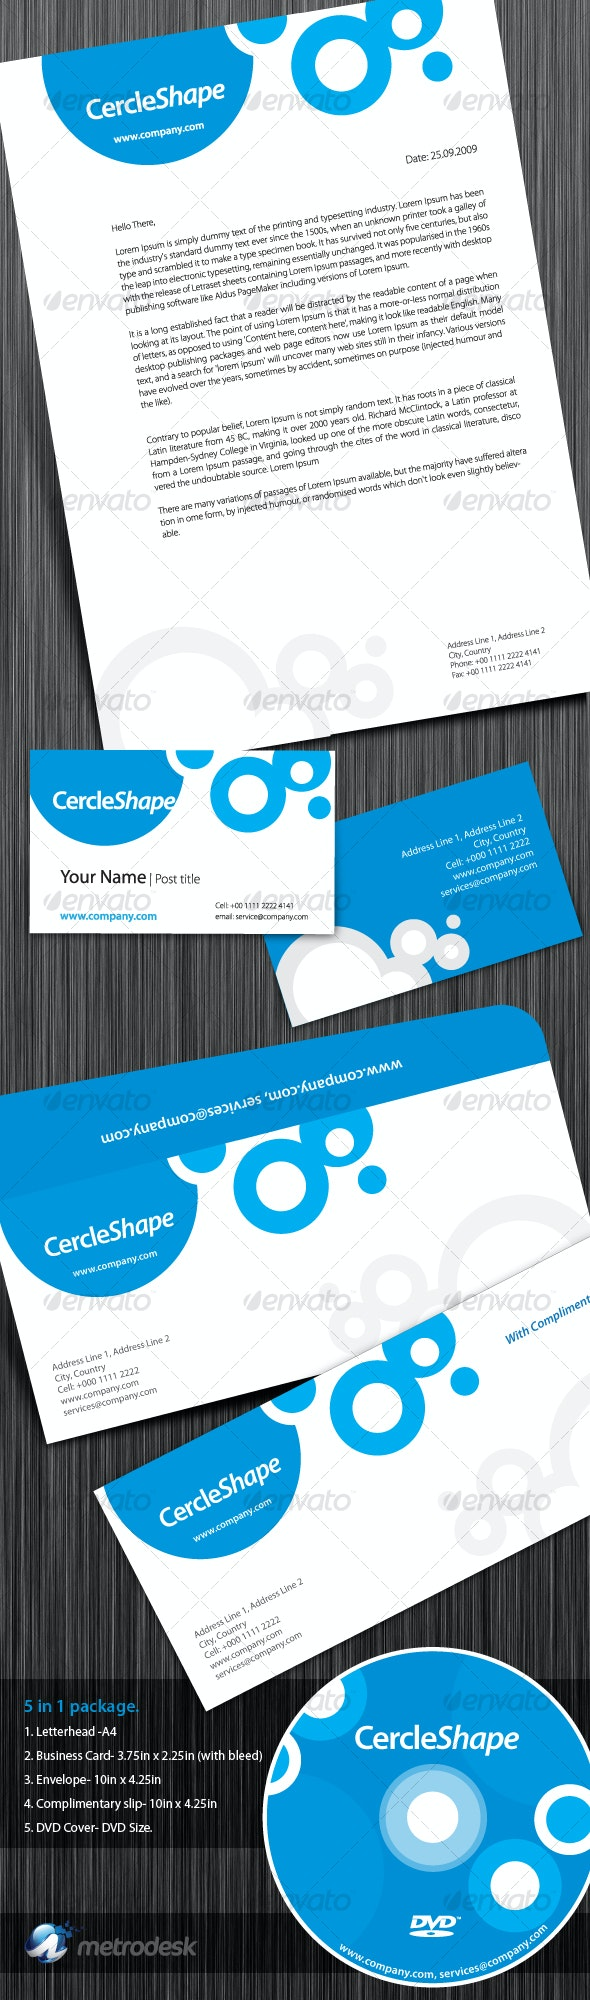 CercleShape Corporate Identity - Stationery Print Templates